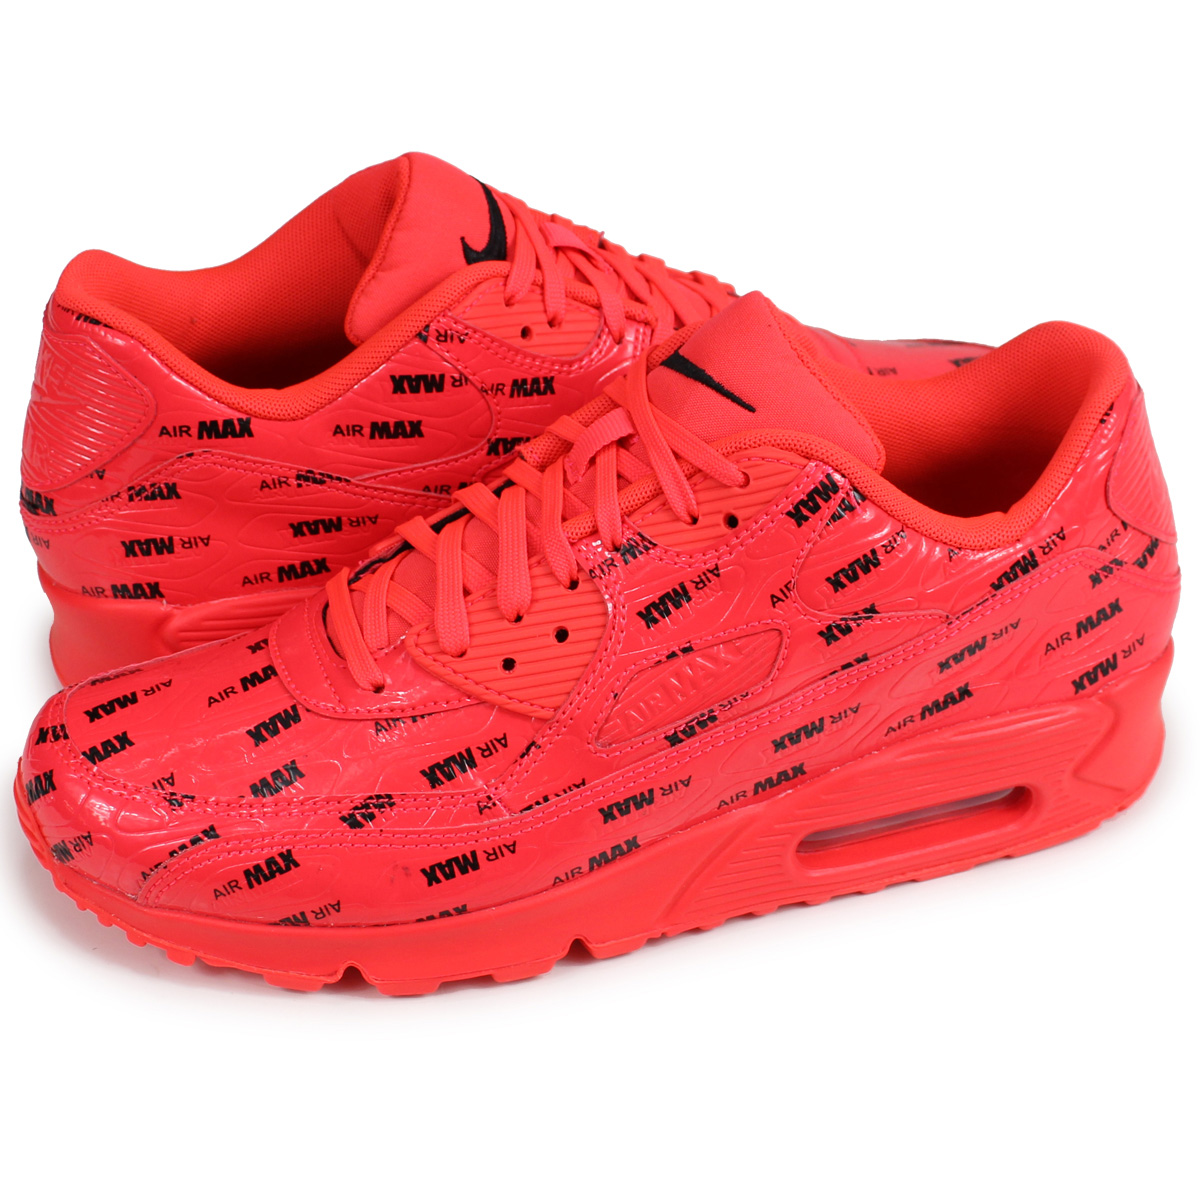 detailed look 9942e 9cc0f Nike NIKE Air Max 90 sneakers men gap Dis AIR MAX 90 PREMIUM 700,155-604  red red [the 7/25 additional arrival]